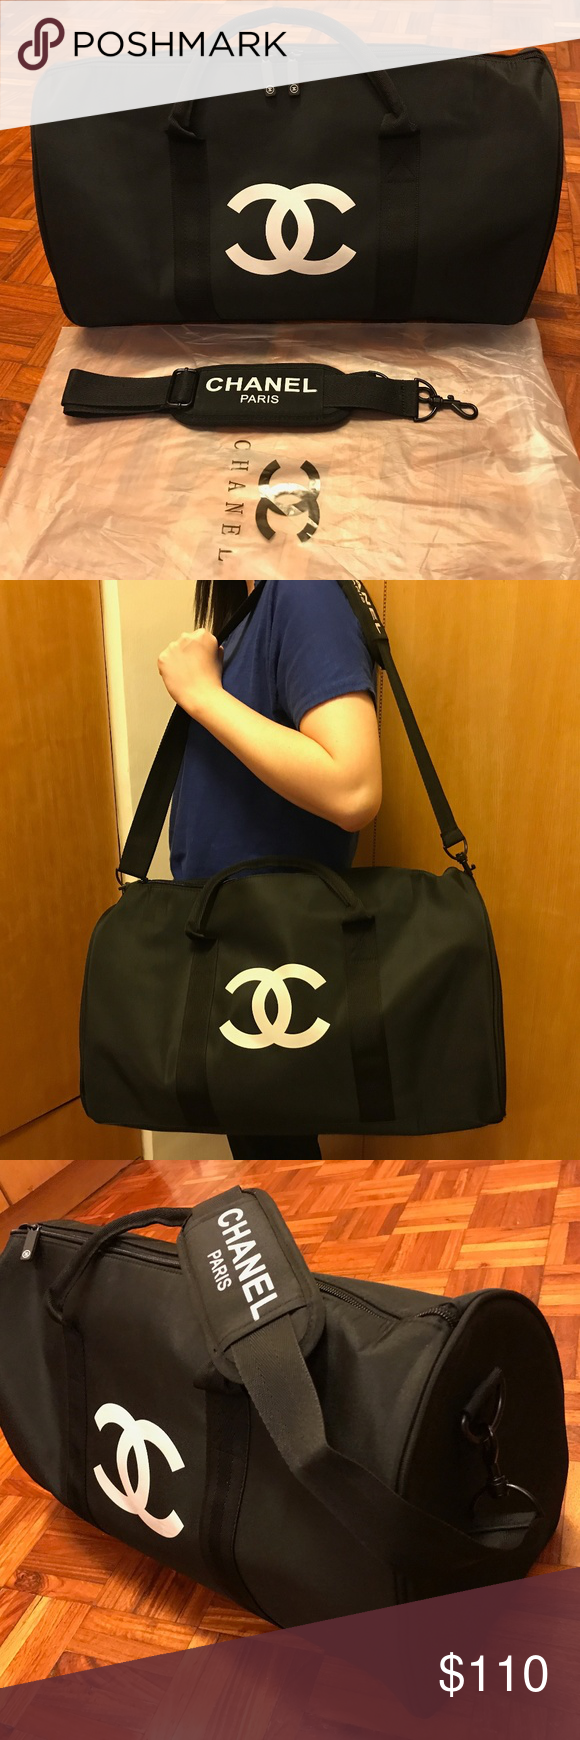 9bd85fa89d39 Chanel VIP Gift Bag Travel Bag Gym Duffel Weekend Authentic Chanel VIP  Travel Duffel Bag Weekend